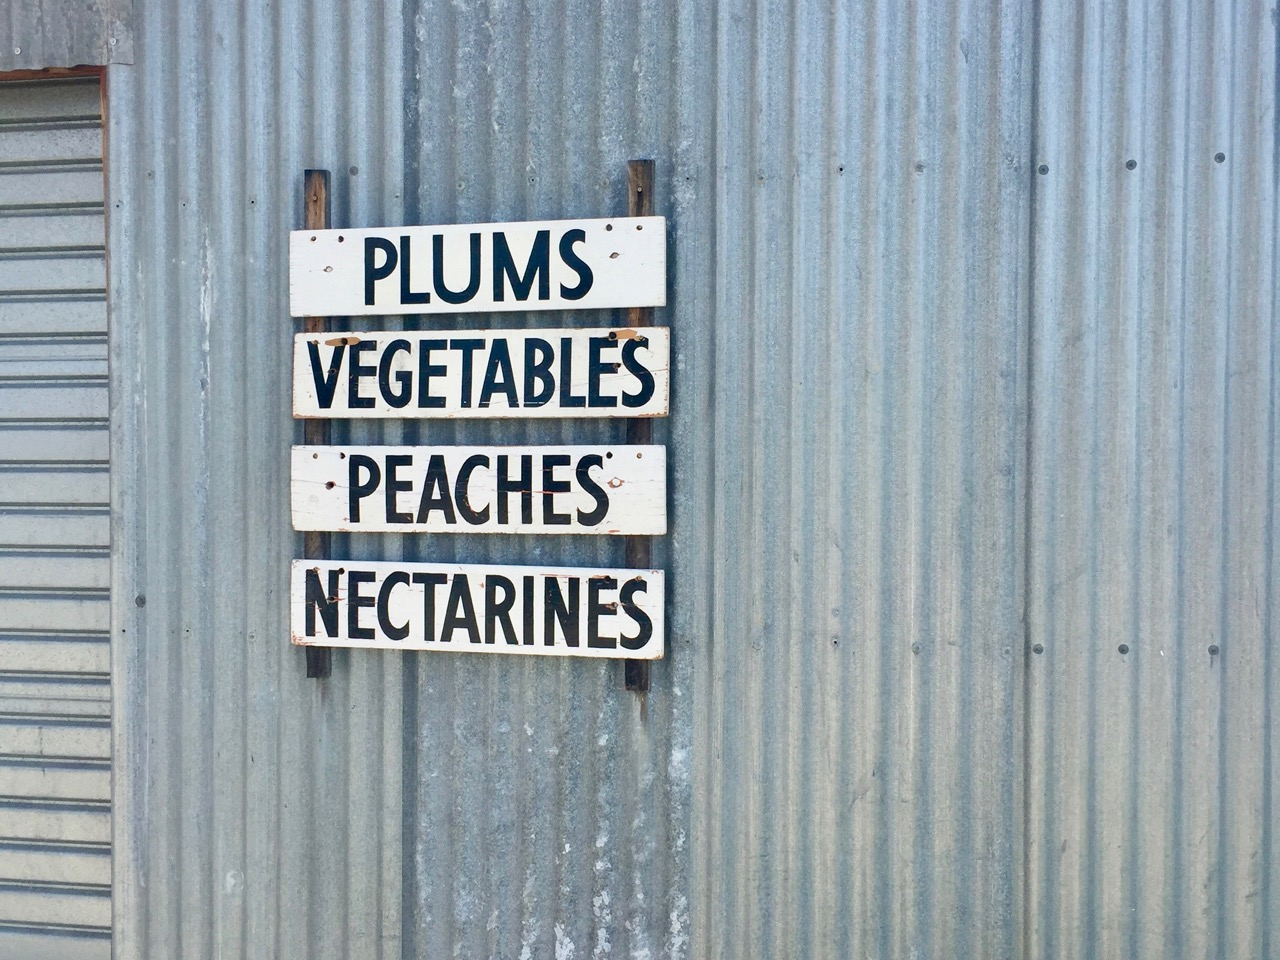 plums vegetables peaches nectarines